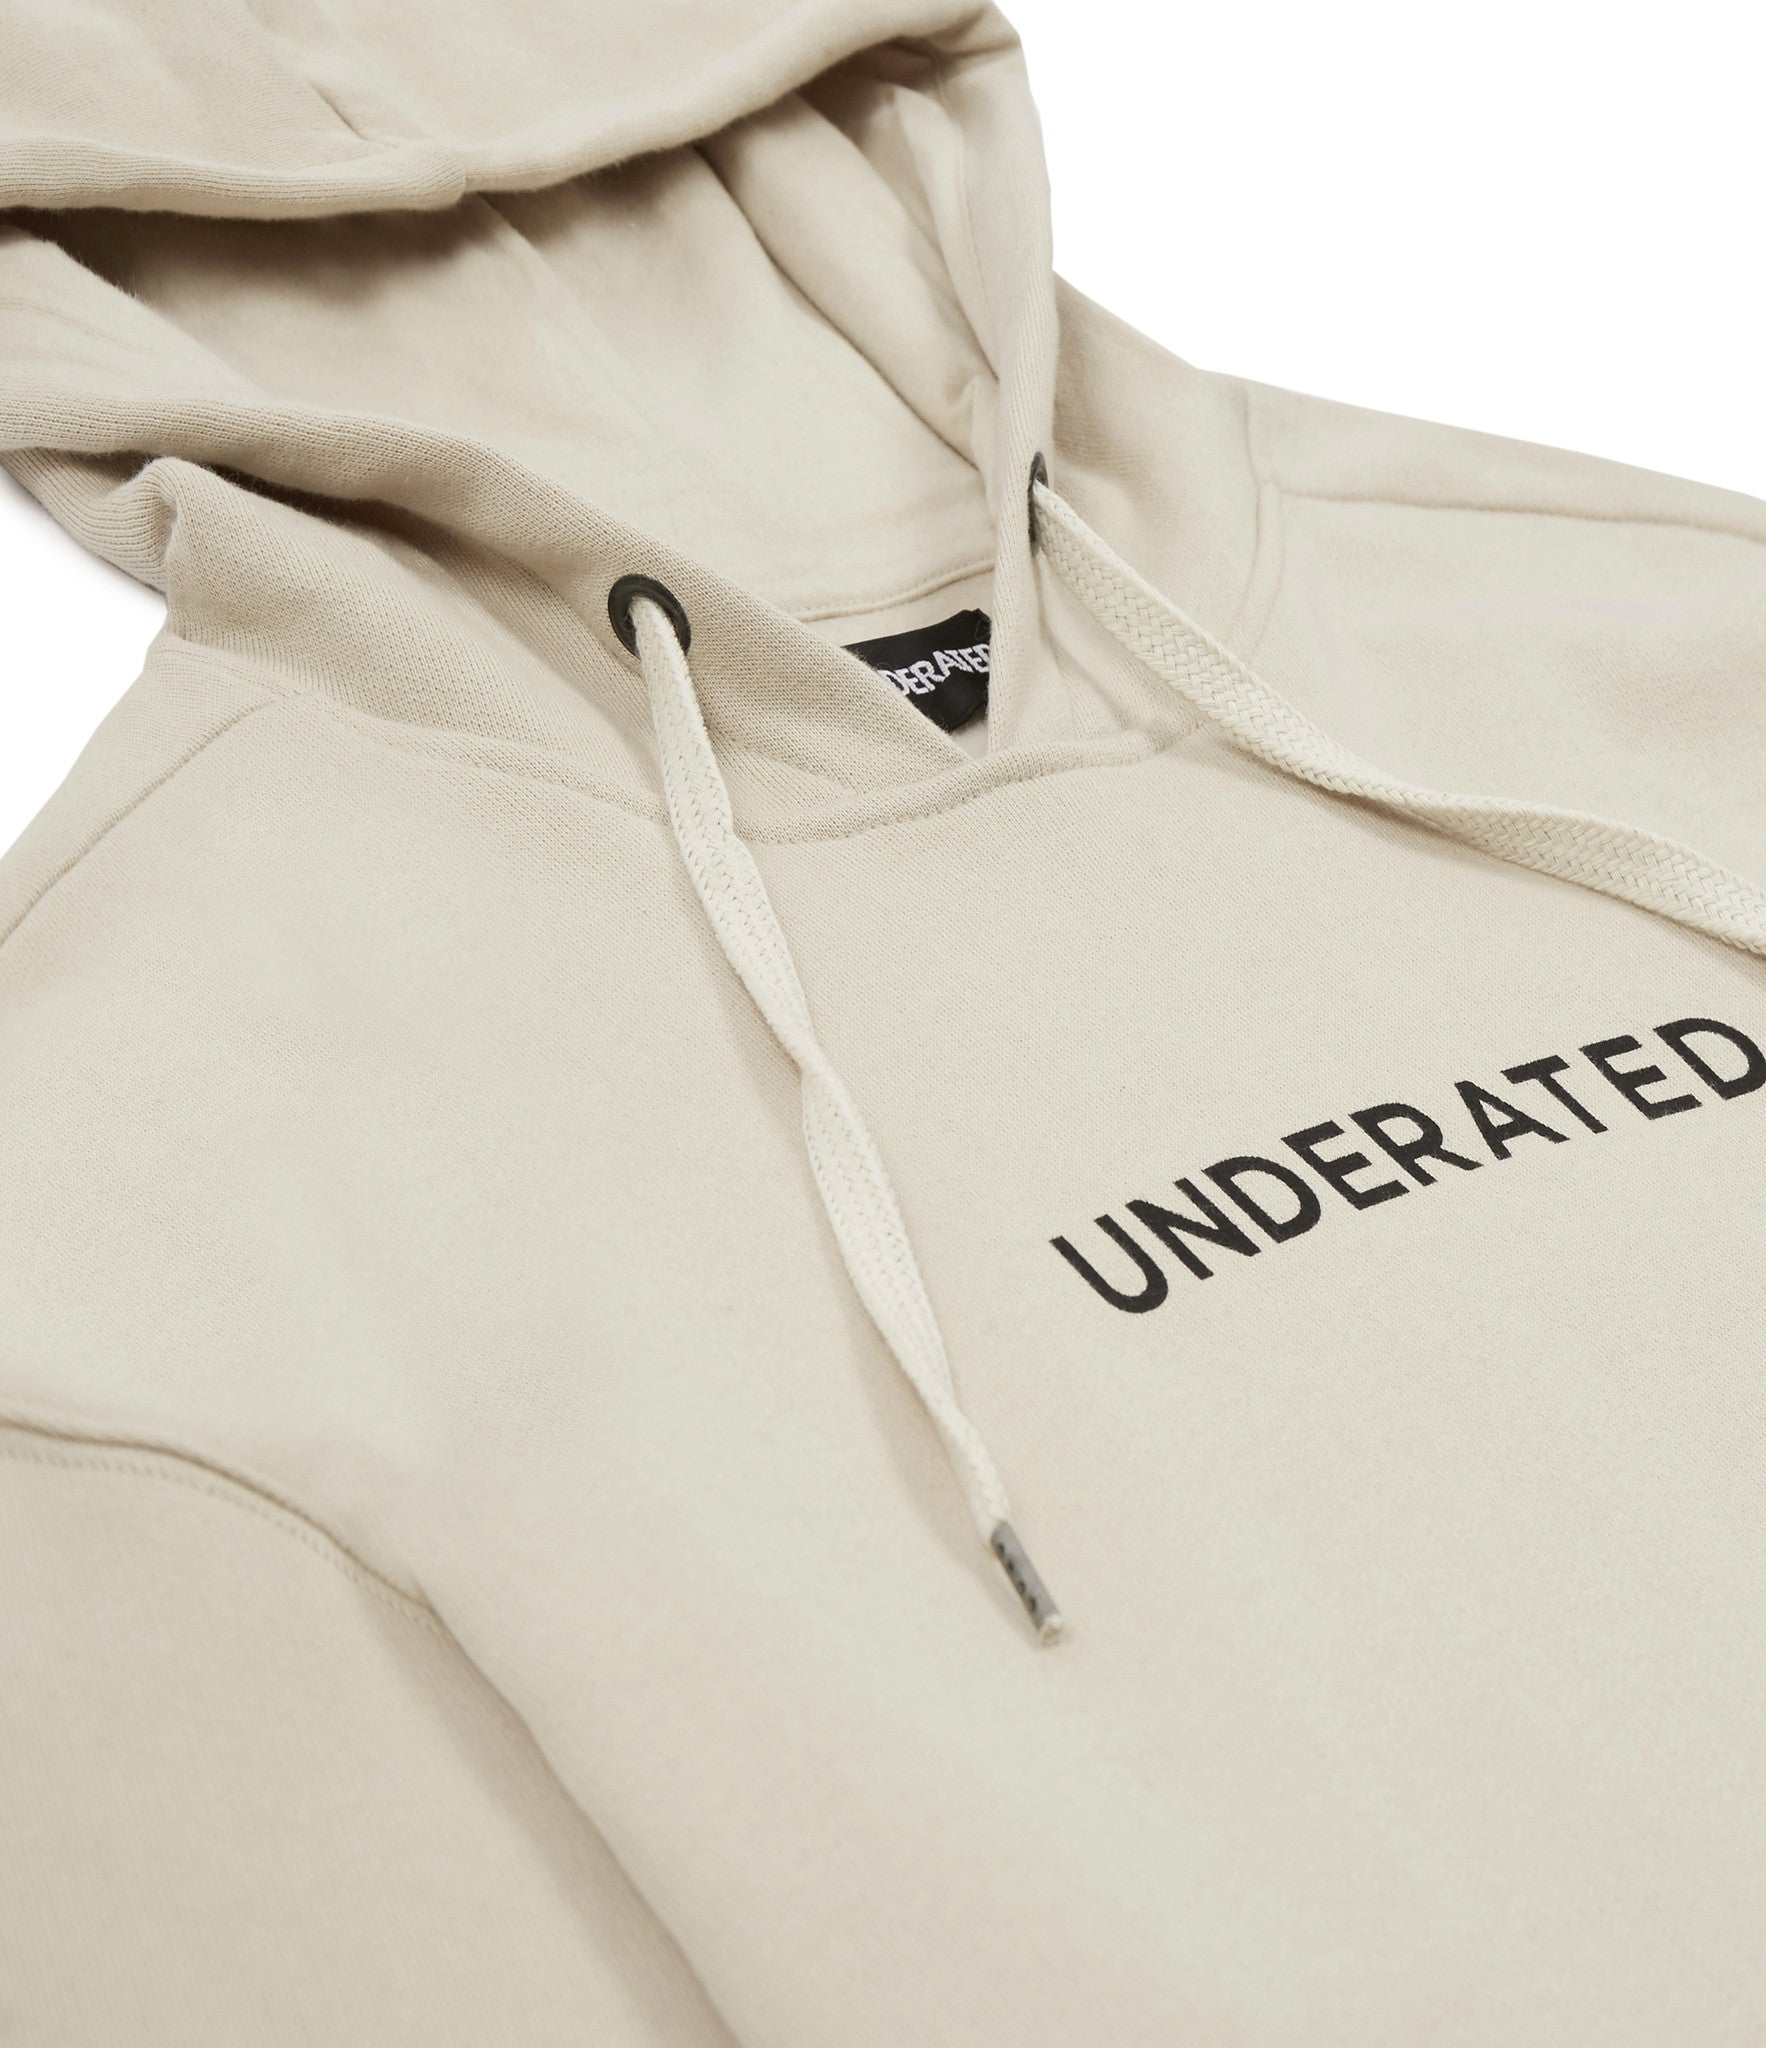 HD334 Printed Hoody - Nude - underated london - underatedco - 2